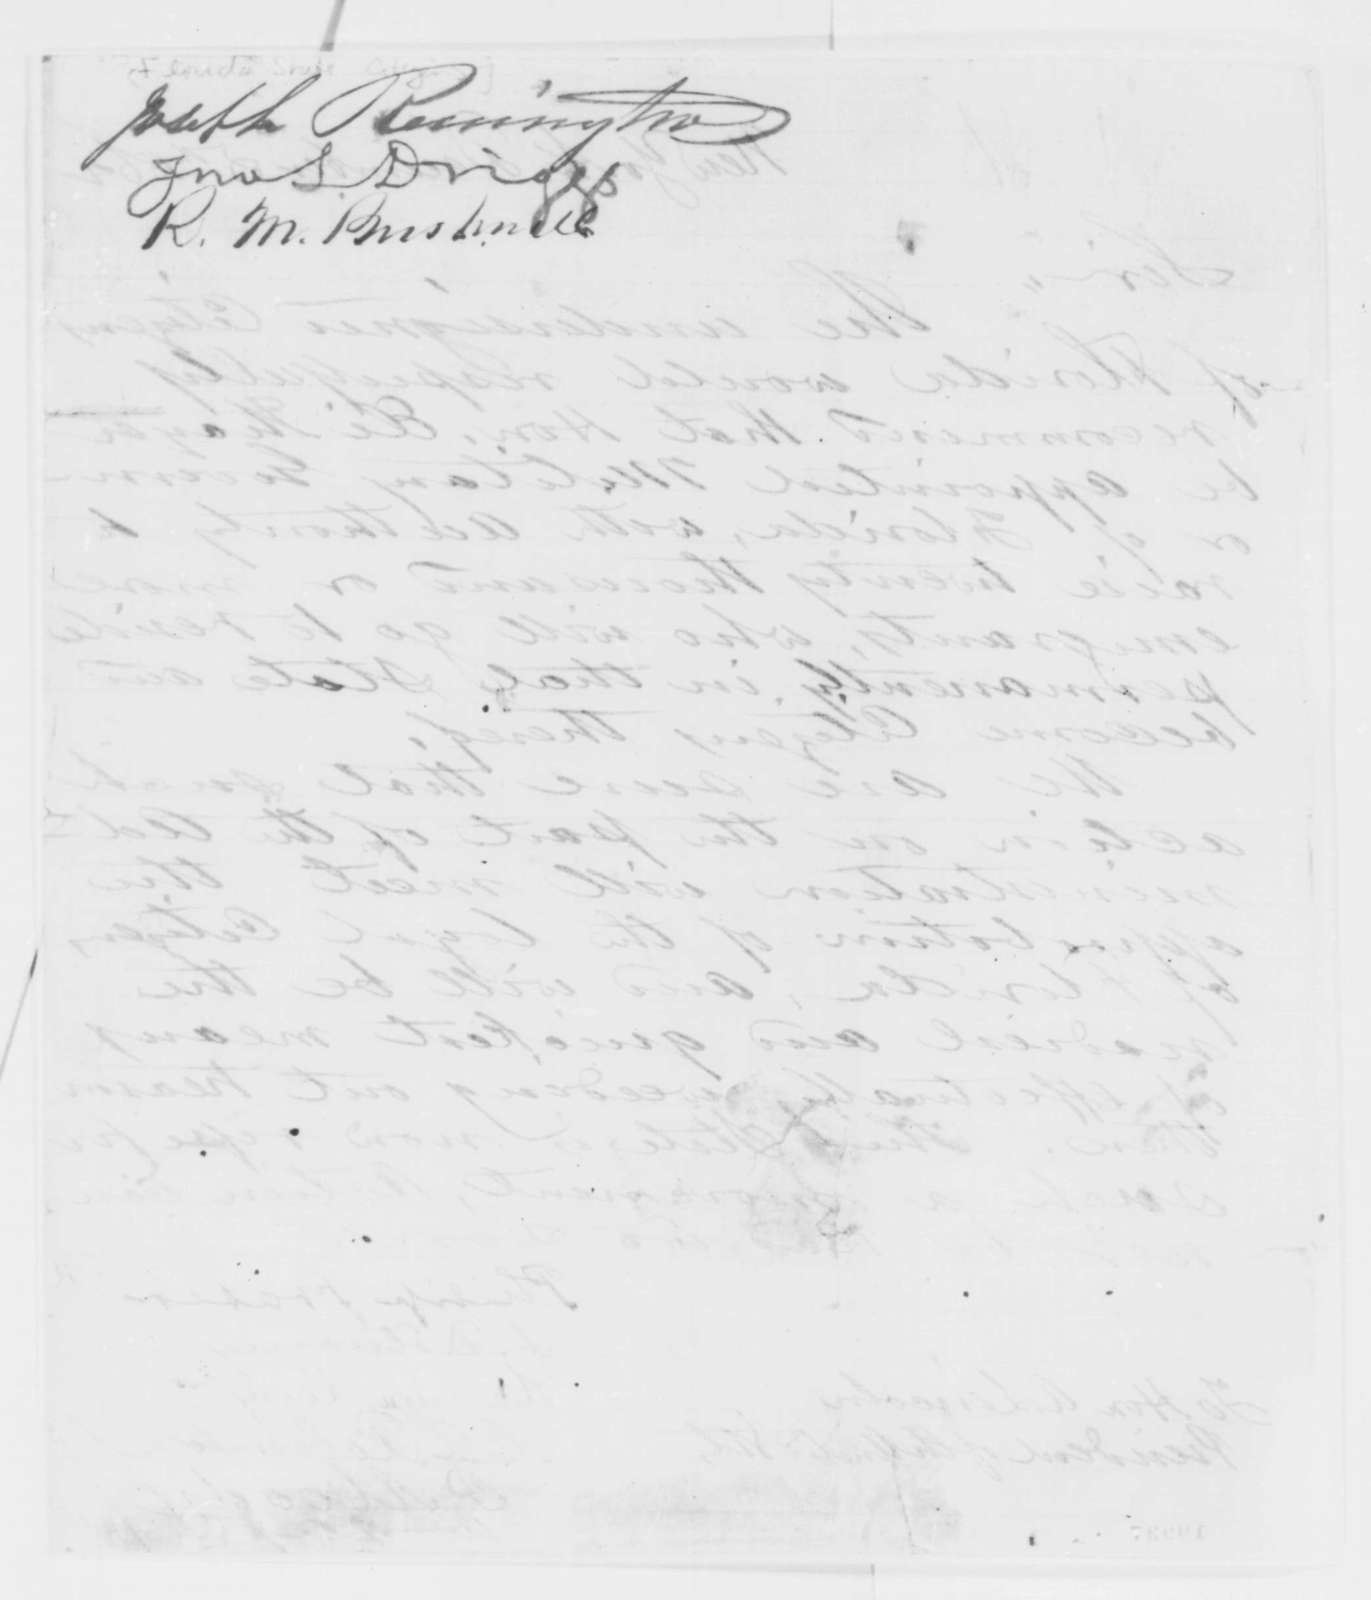 Florida Citizens to Abraham Lincoln, Friday, December 05, 1862  (Petitions recommending appointment of Eli Thayer as governor)